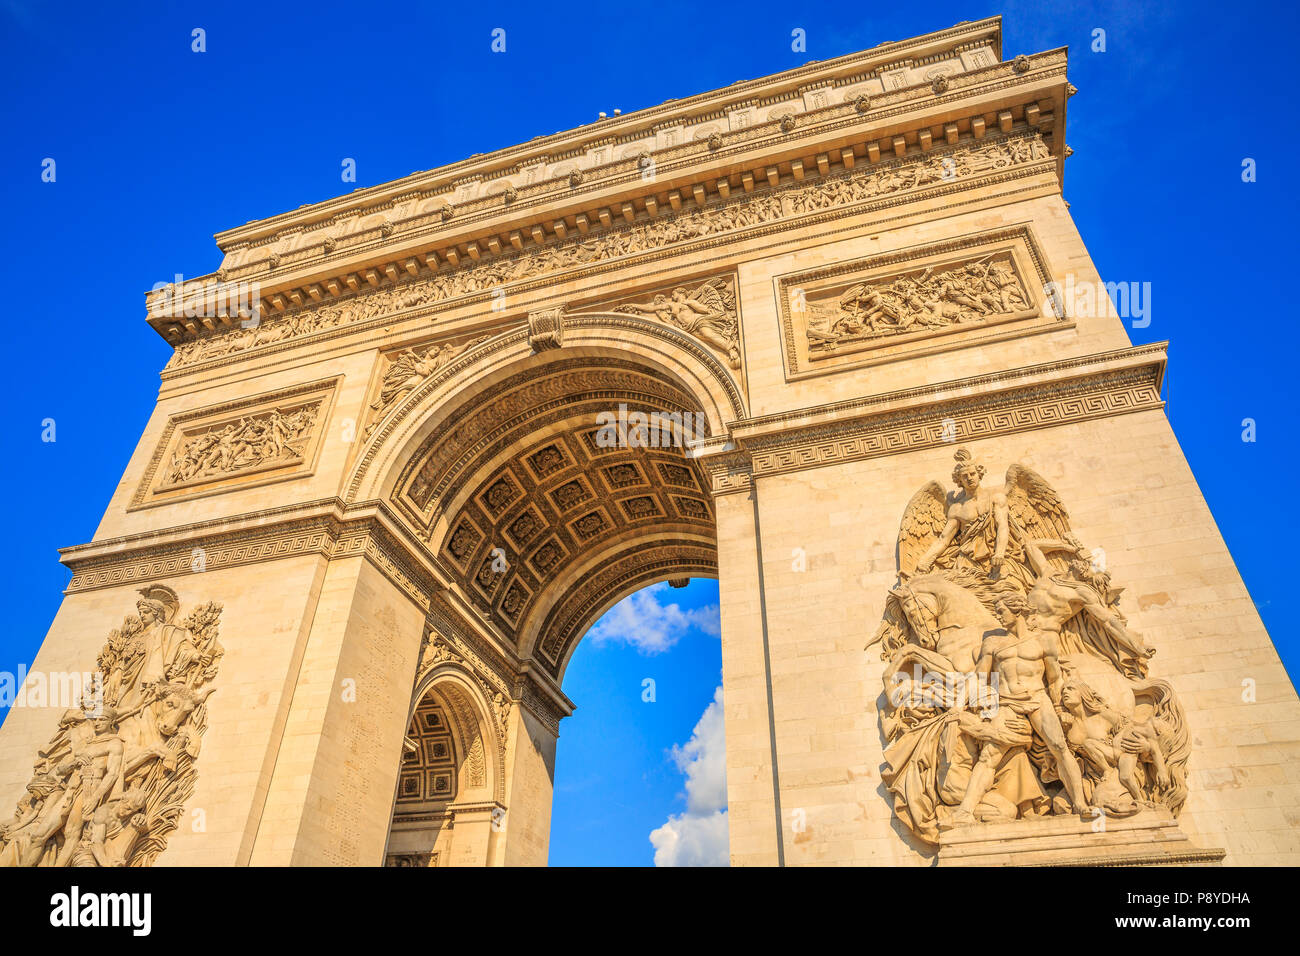 Bottom view of Arch of Triumph at center of Place Charles de Gaulle in a beautiful sunny day with blue sky. Popular landmark and famous tourist attraction in Paris capital of France in Europe. - Stock Image